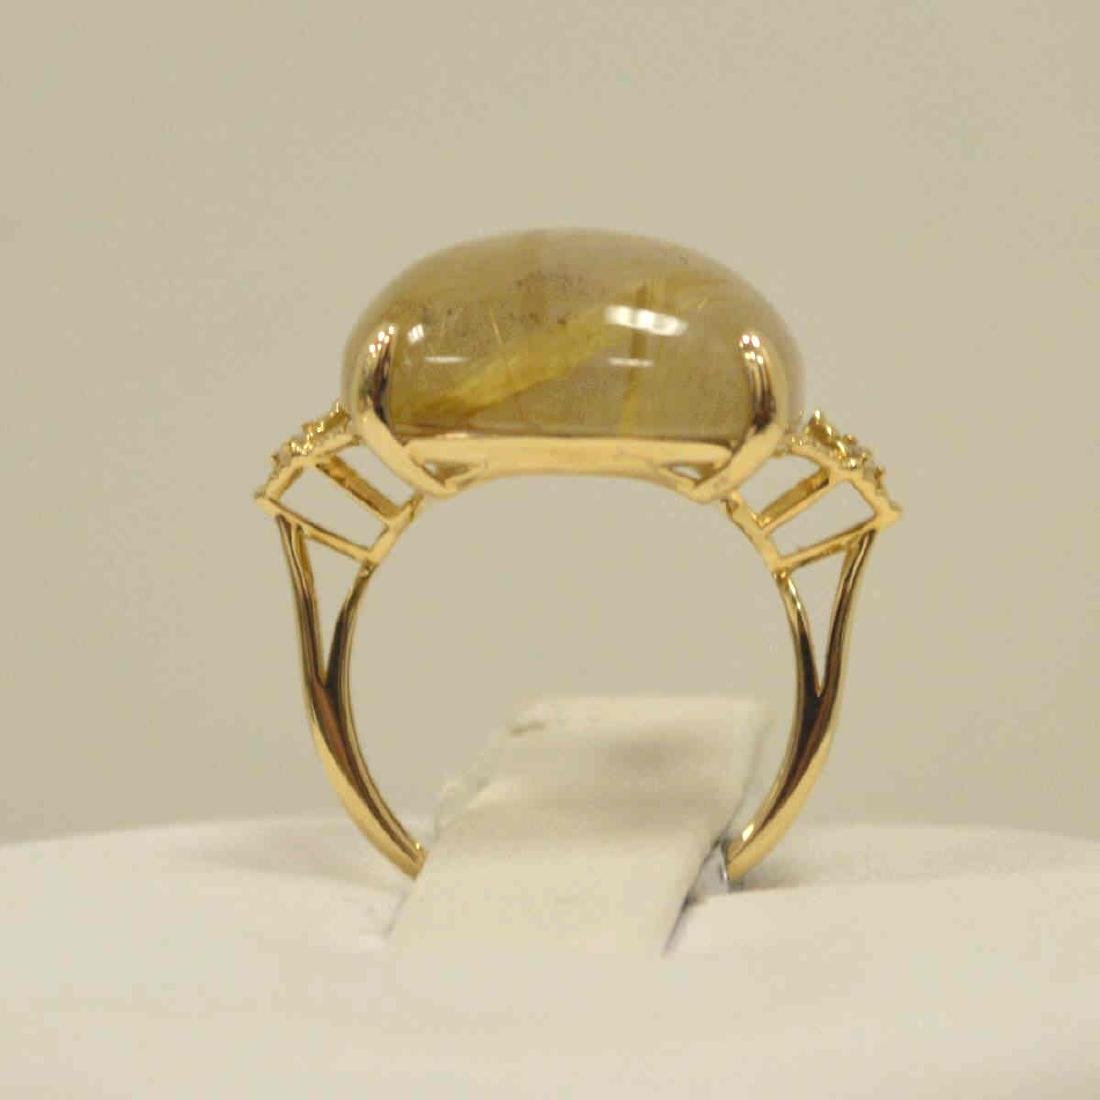 14kt yellow gold rutilated quartz and diamond ring - 3